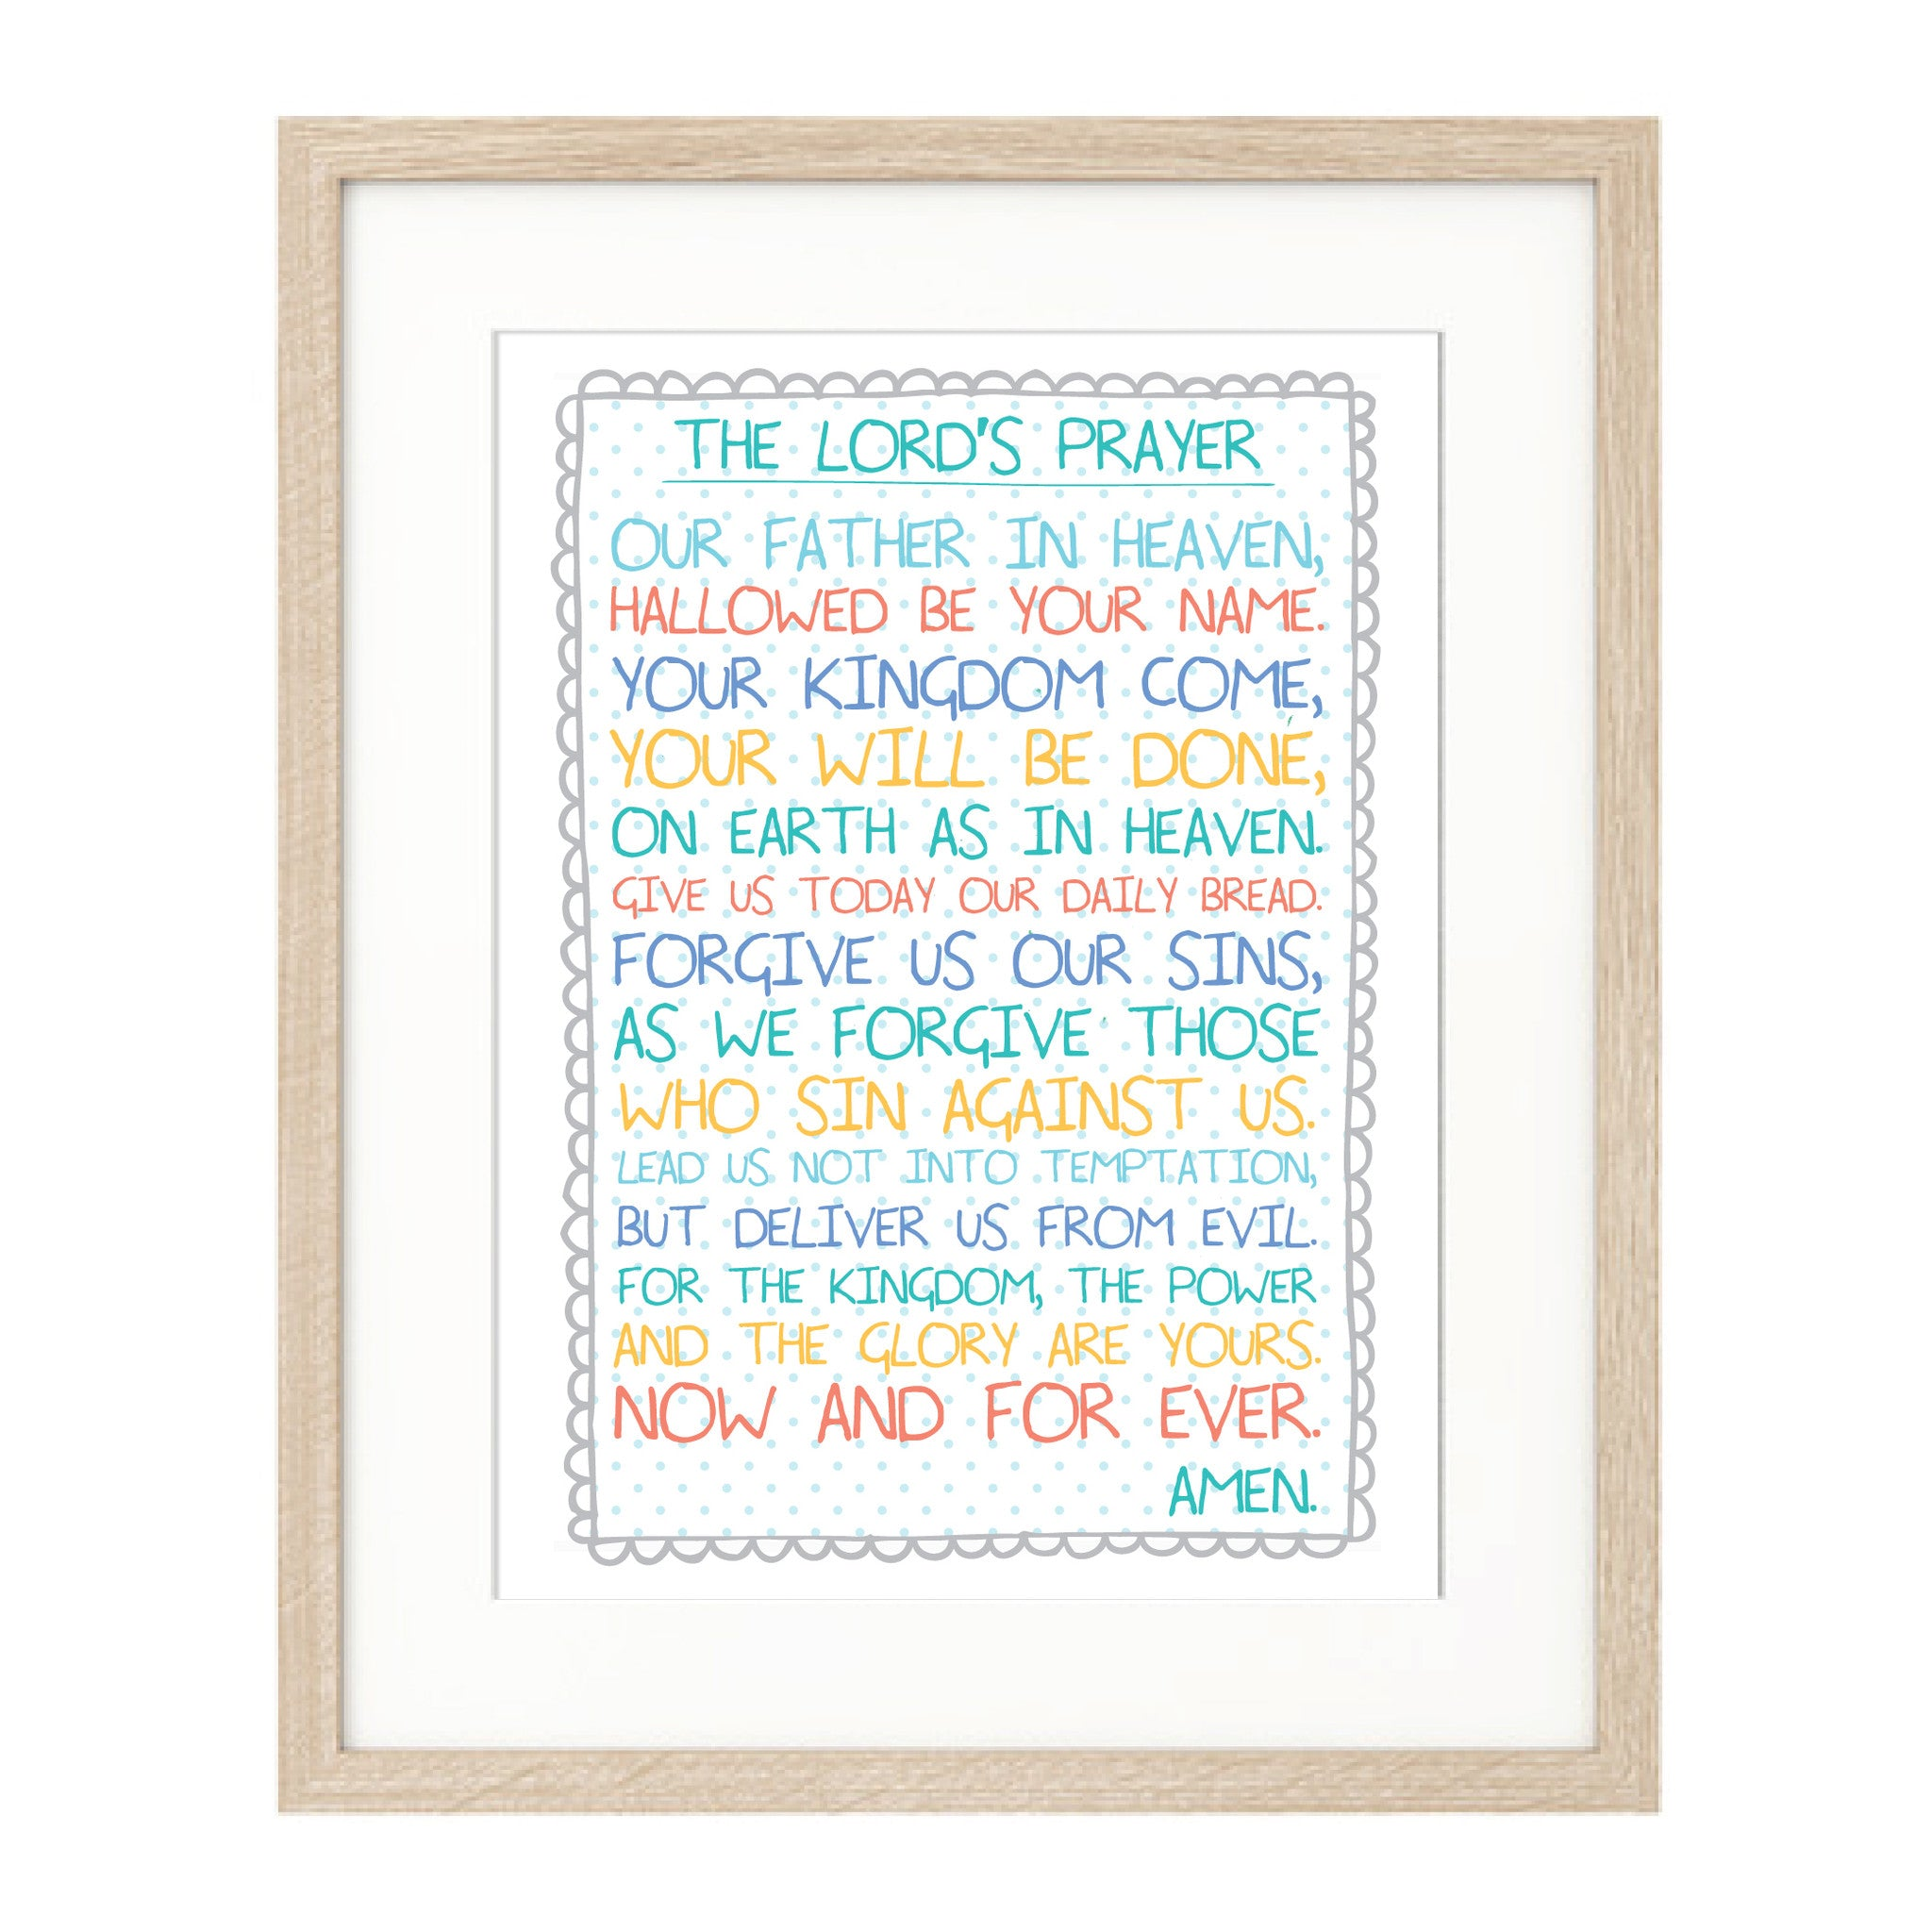 image relating to The Lord's Prayer Printable identified as The Lords Prayer print